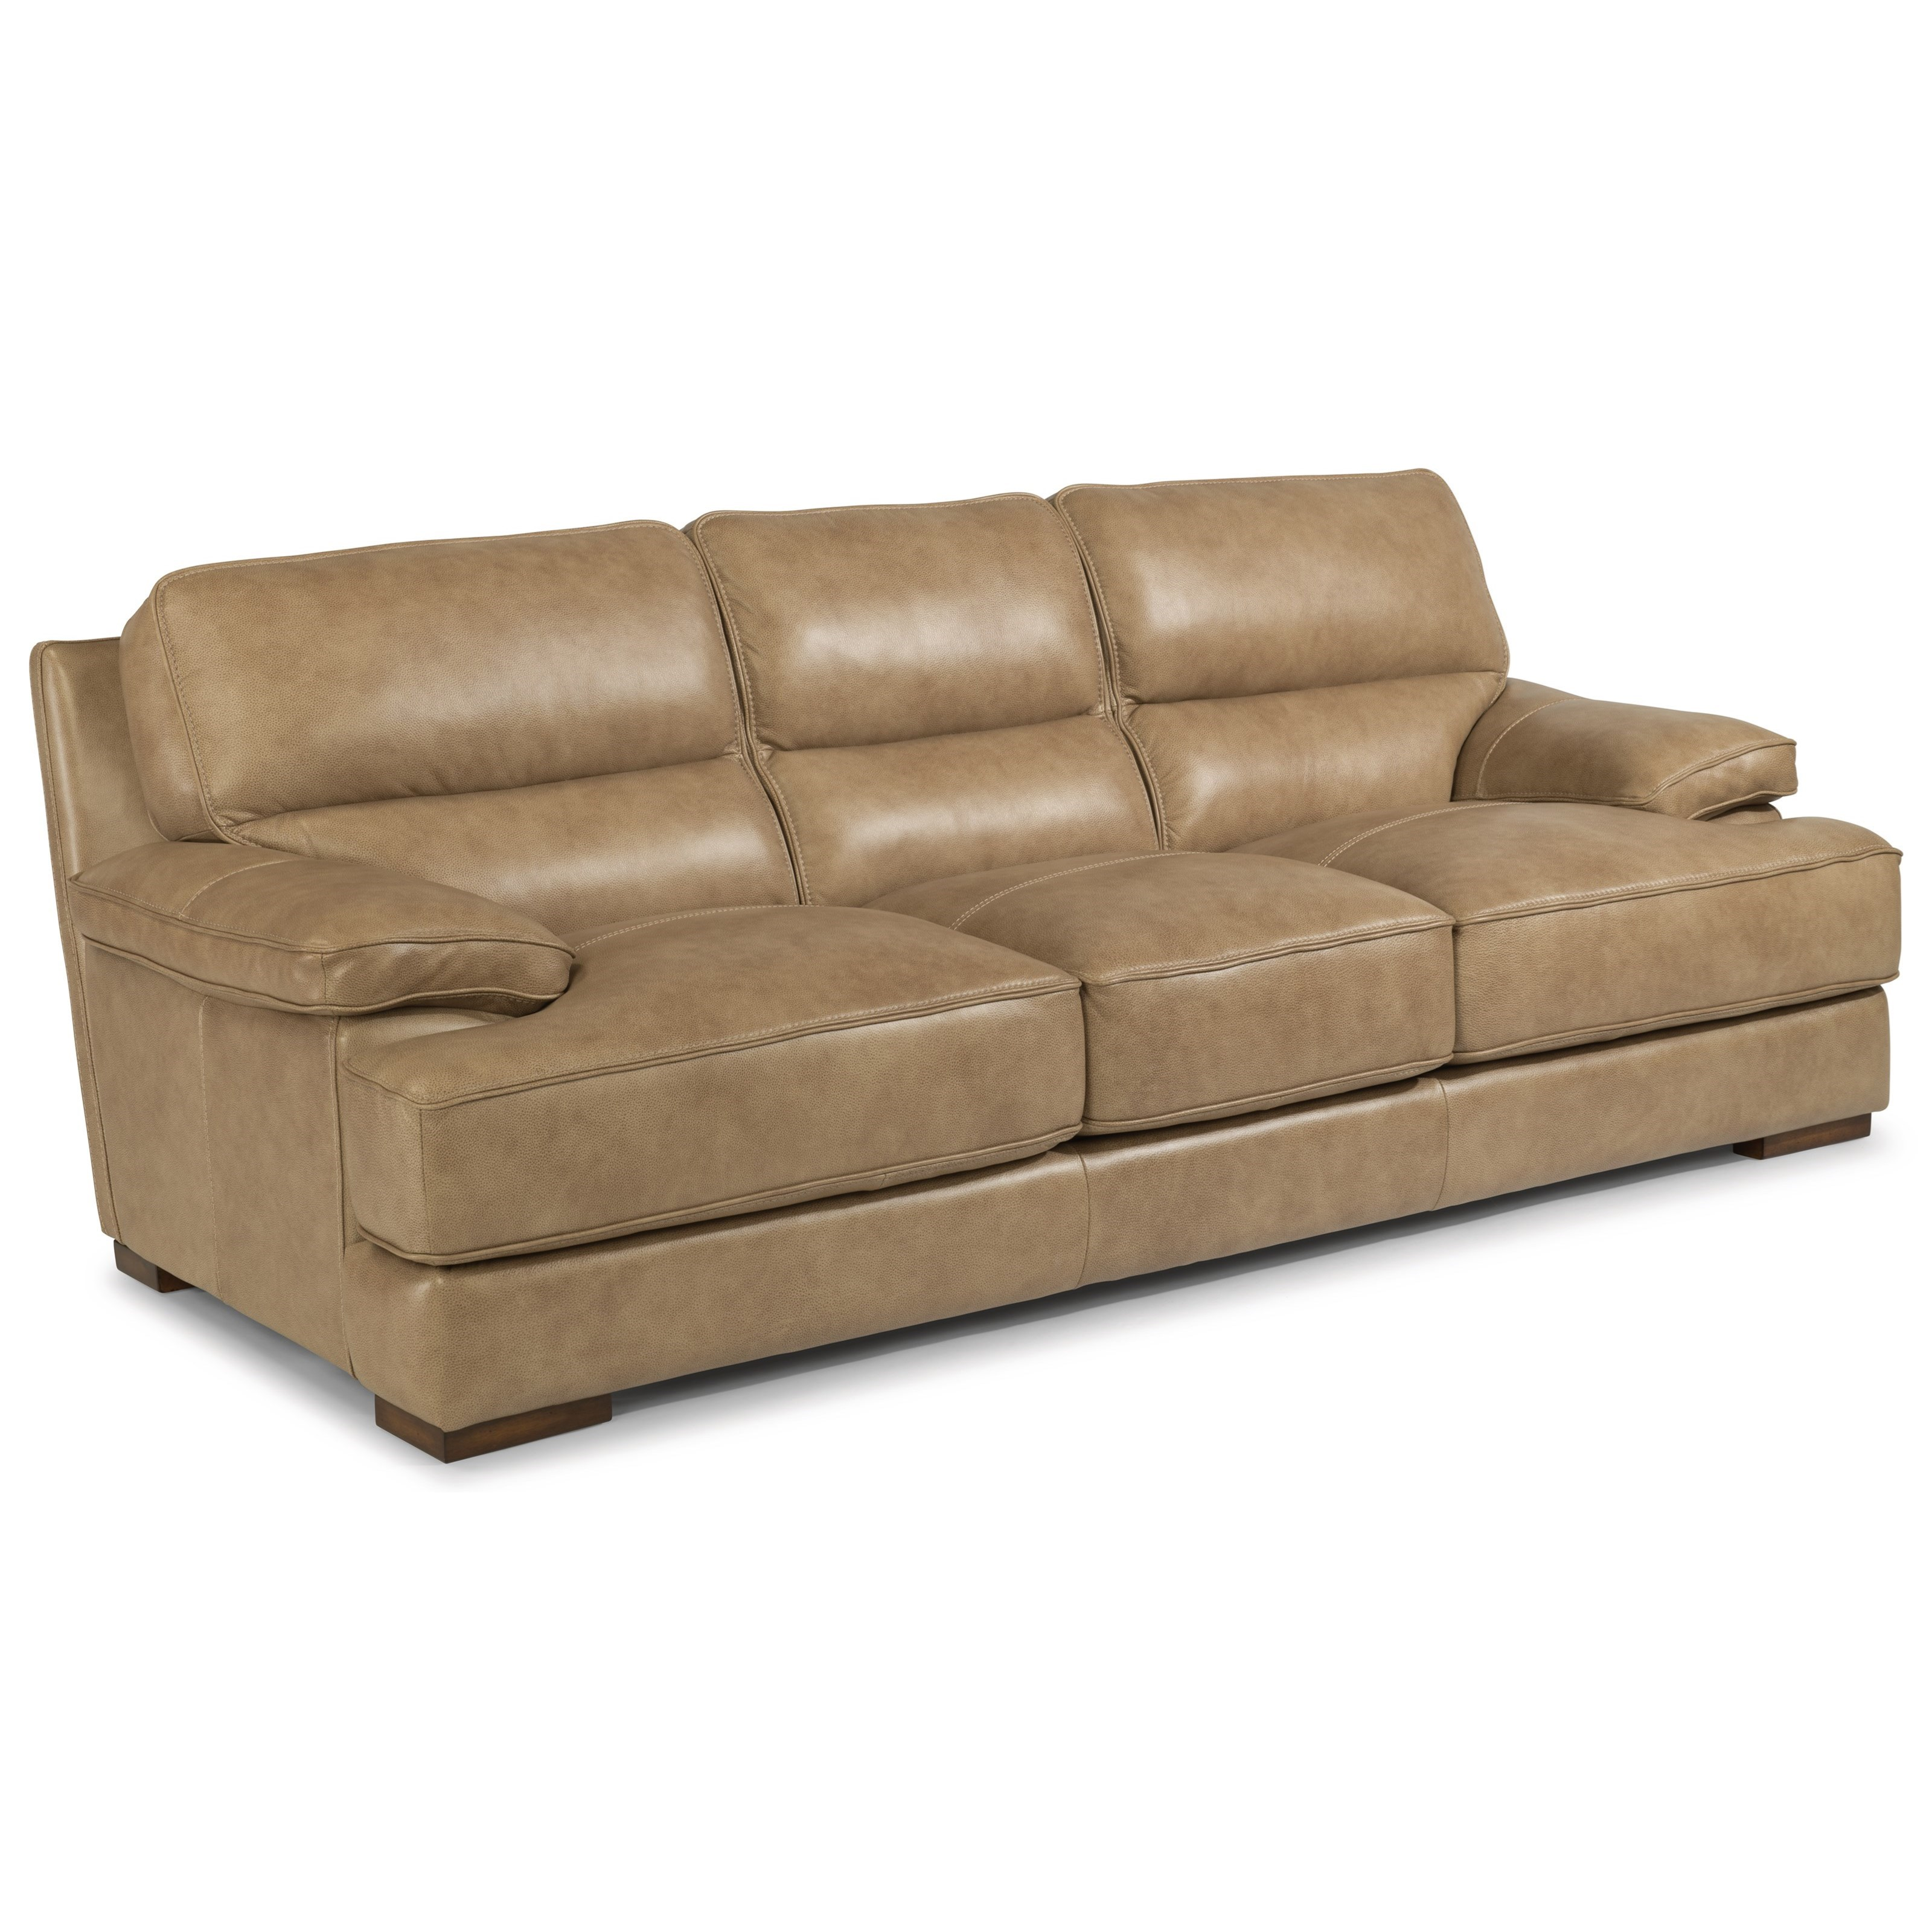 Latitudes - Jade Casual Contemporary Leather Sofa by Flexsteel at Ruby  Gordon Home